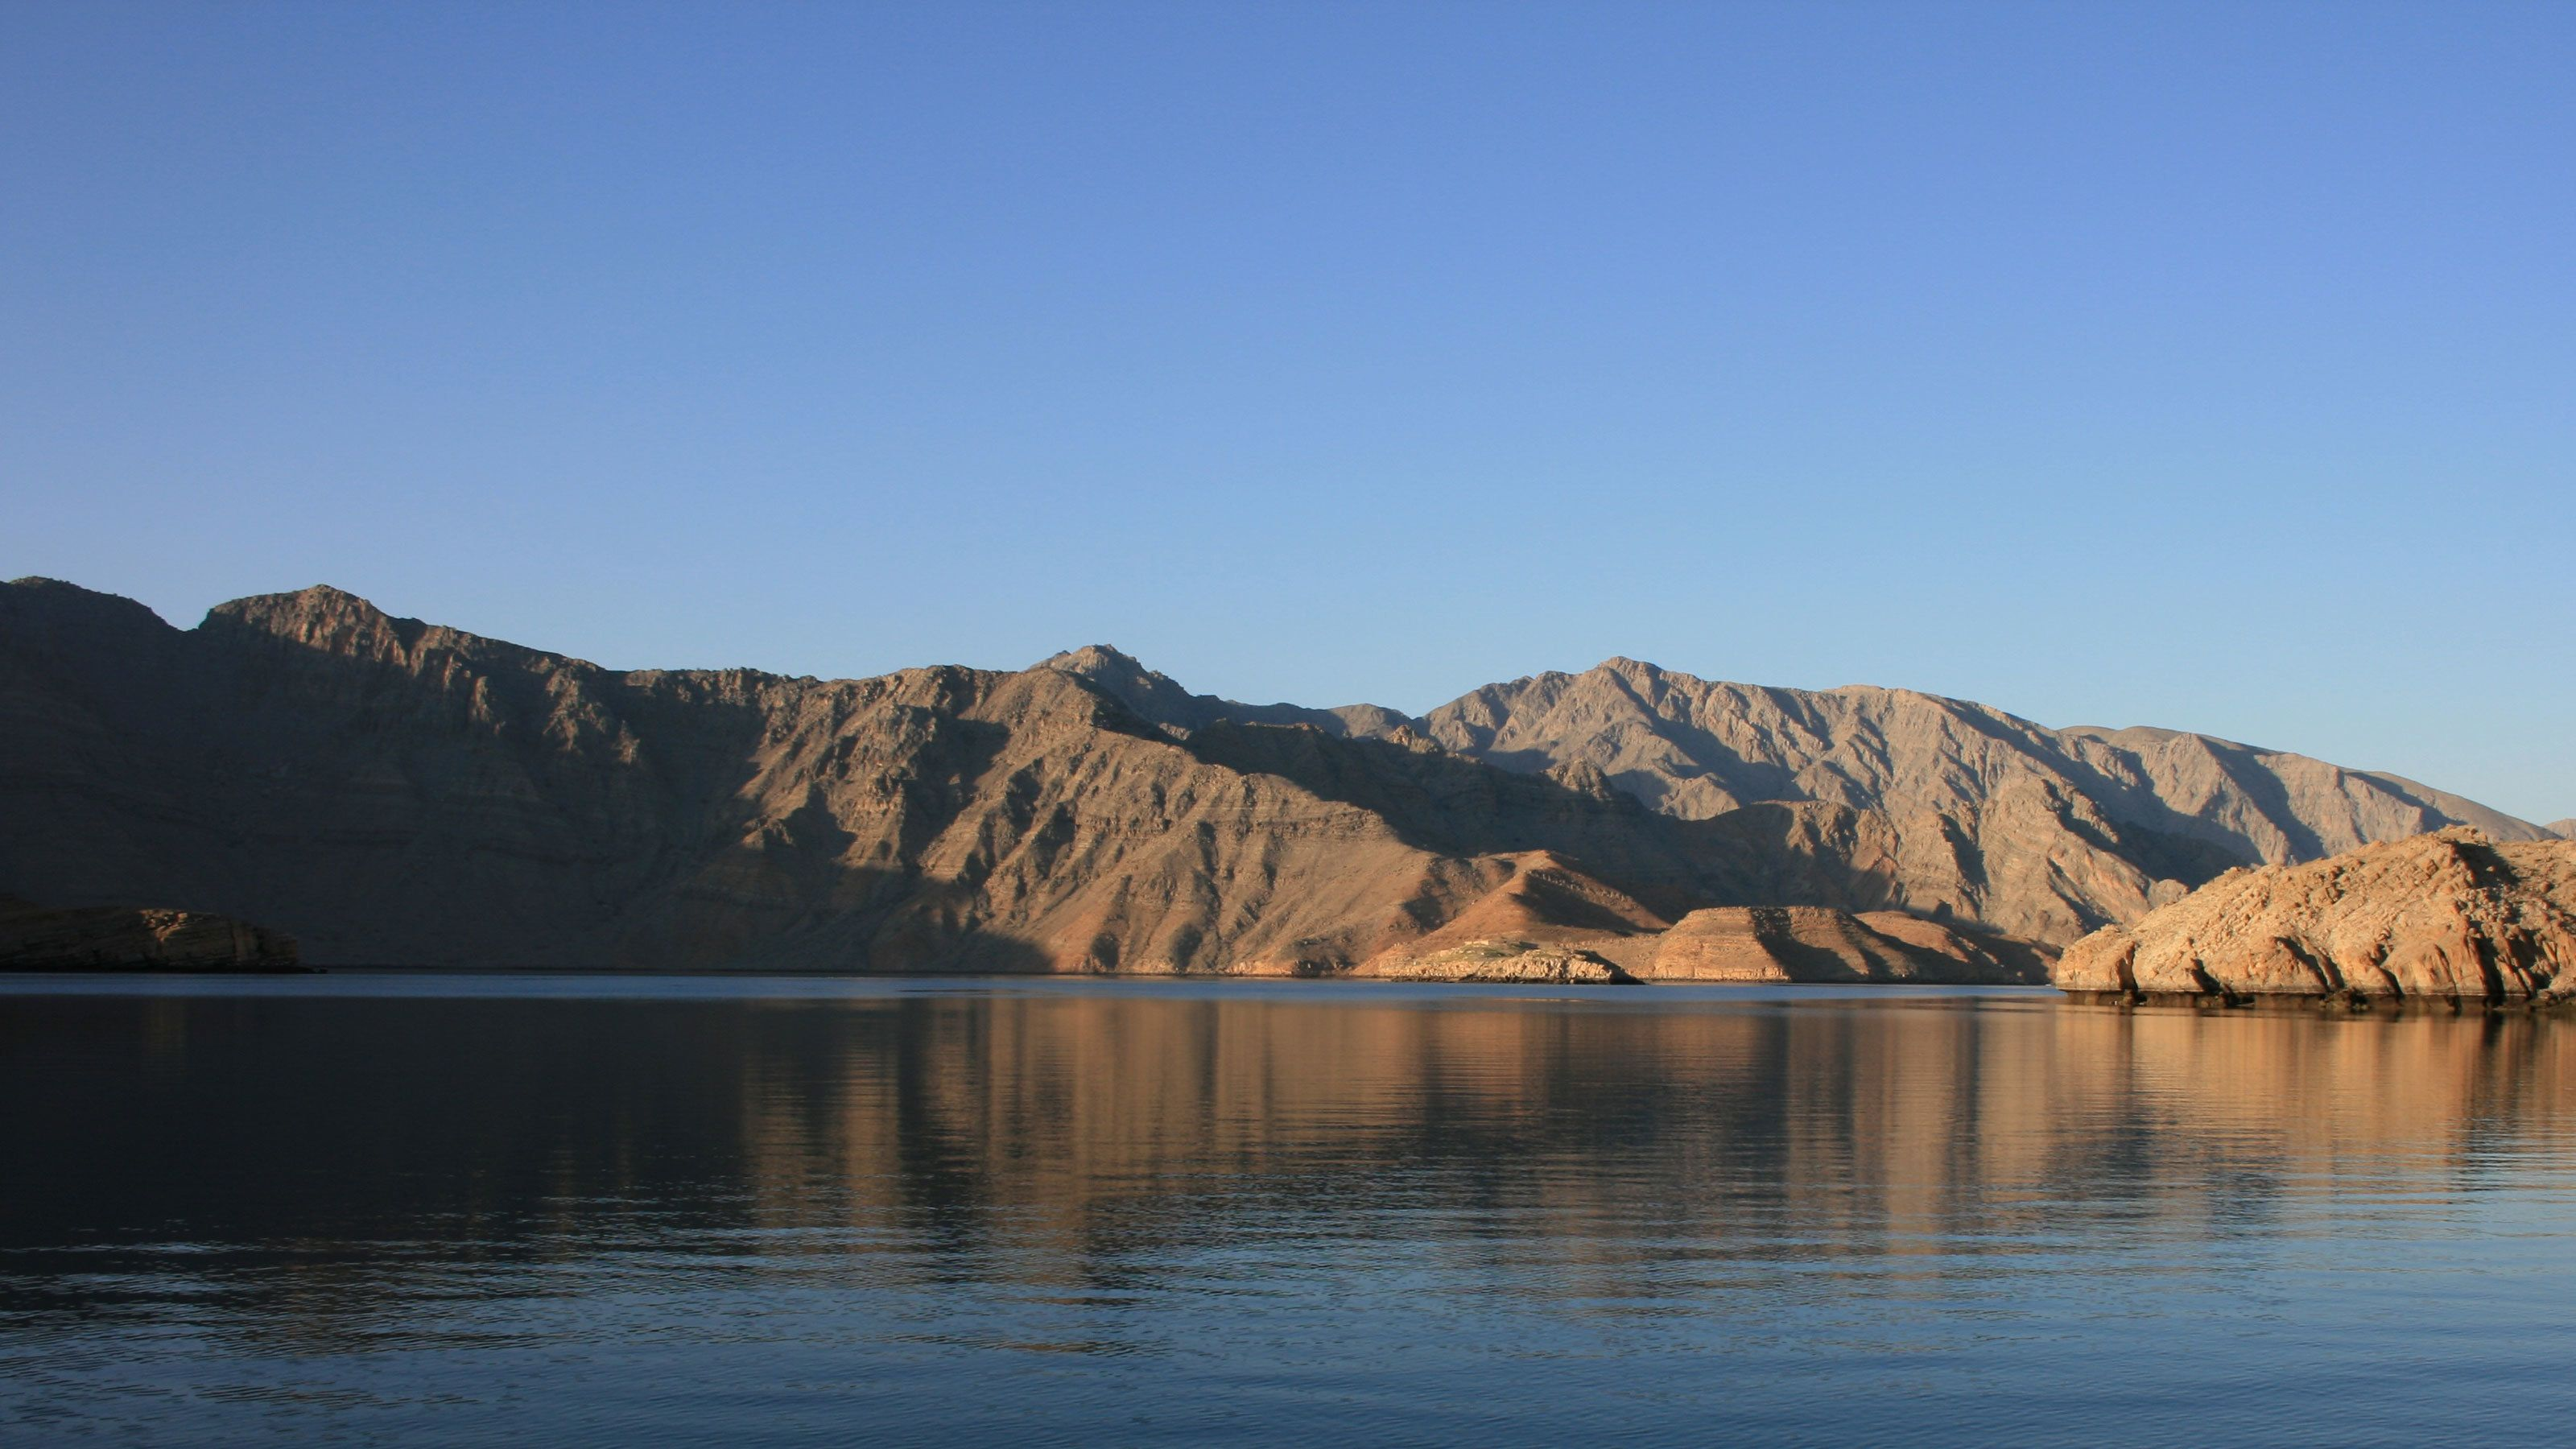 Mountains along the water in Musandam